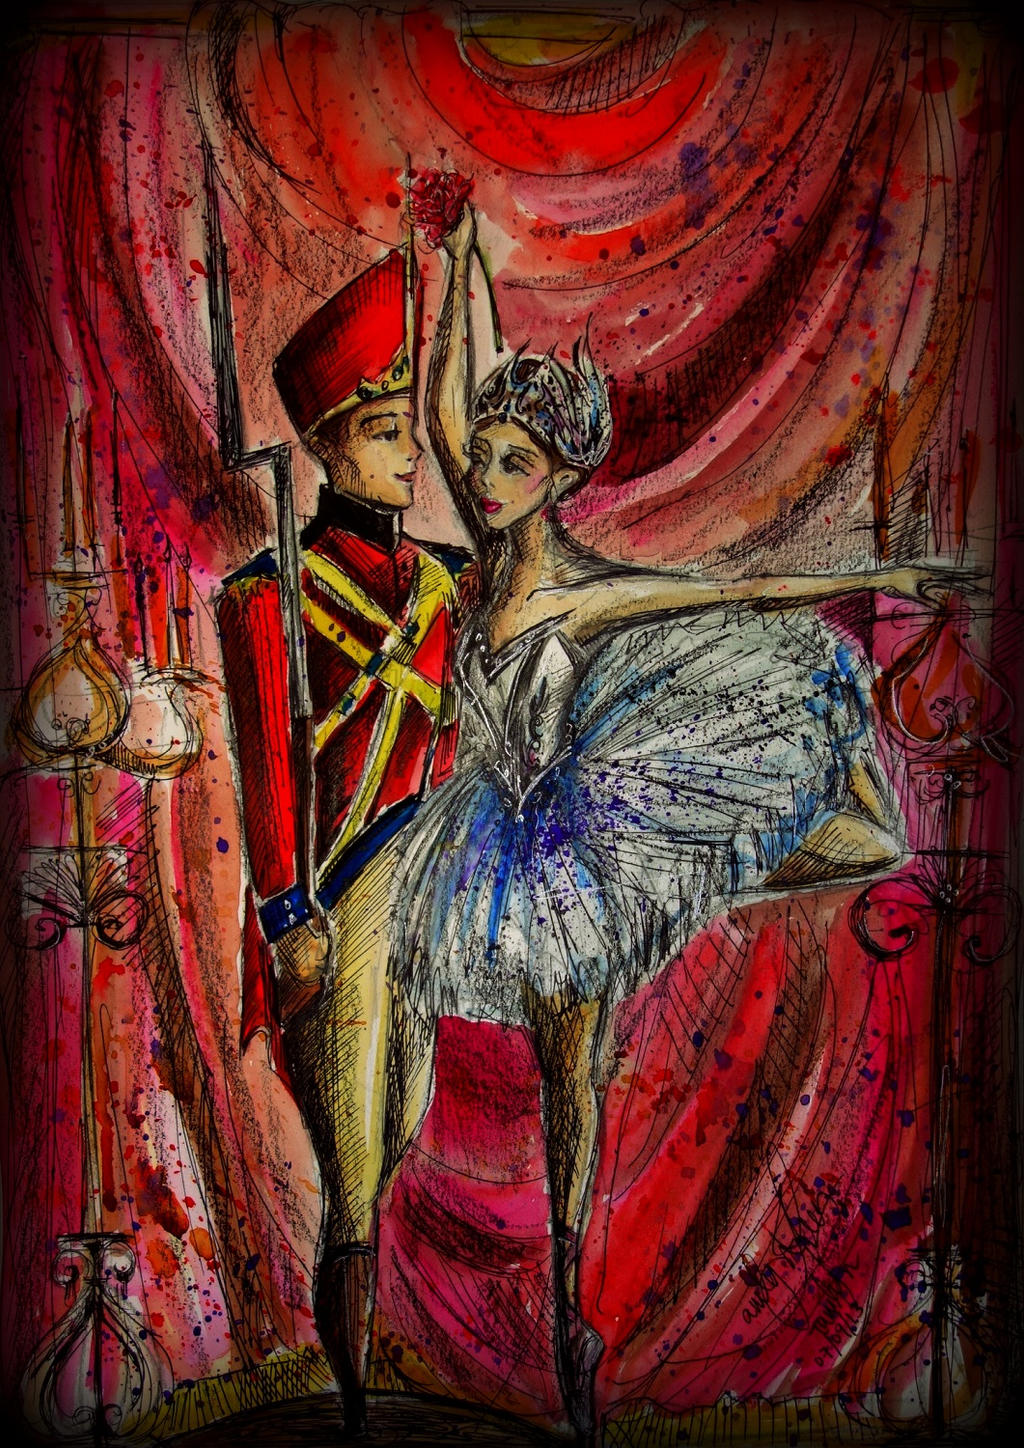 The Tin Soldier by TamiTw